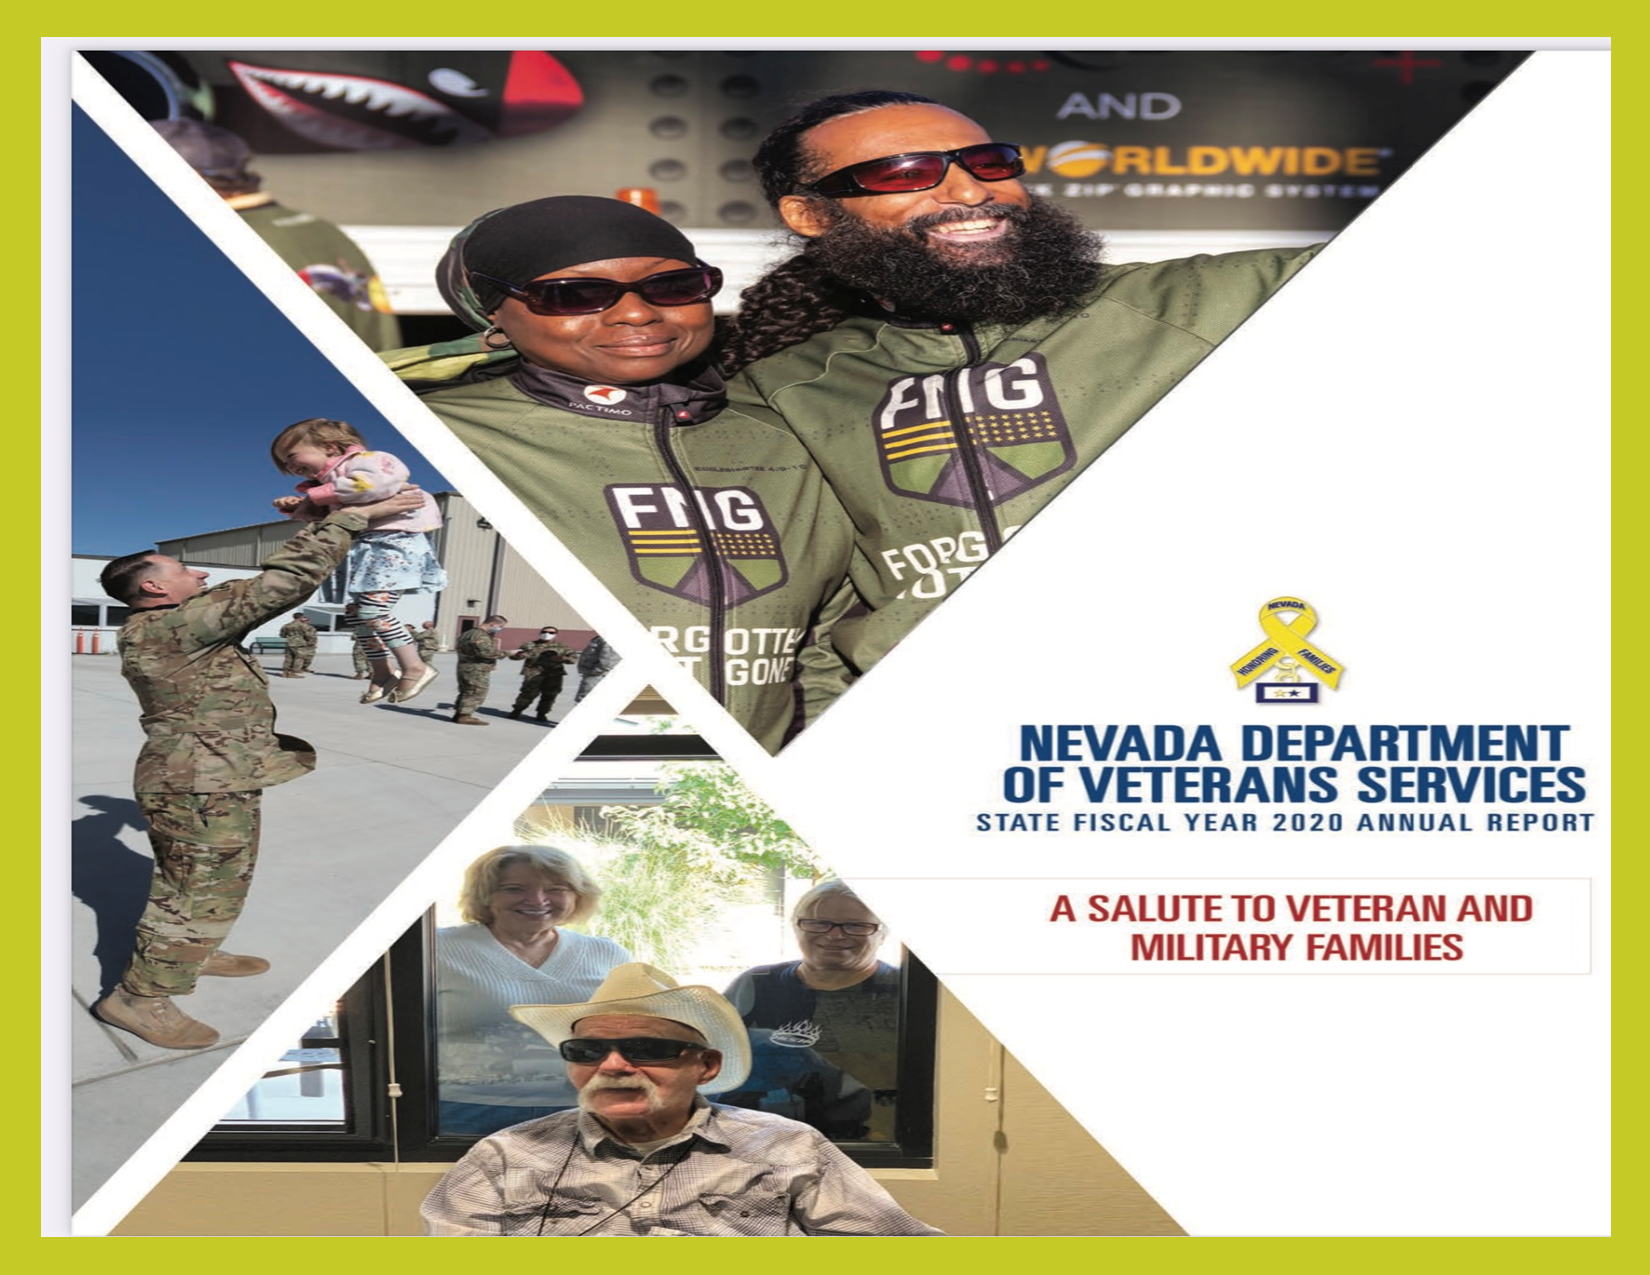 <p>The theme of the NDVS 2020 Annual Report is a salute to veteran and military families. </p>